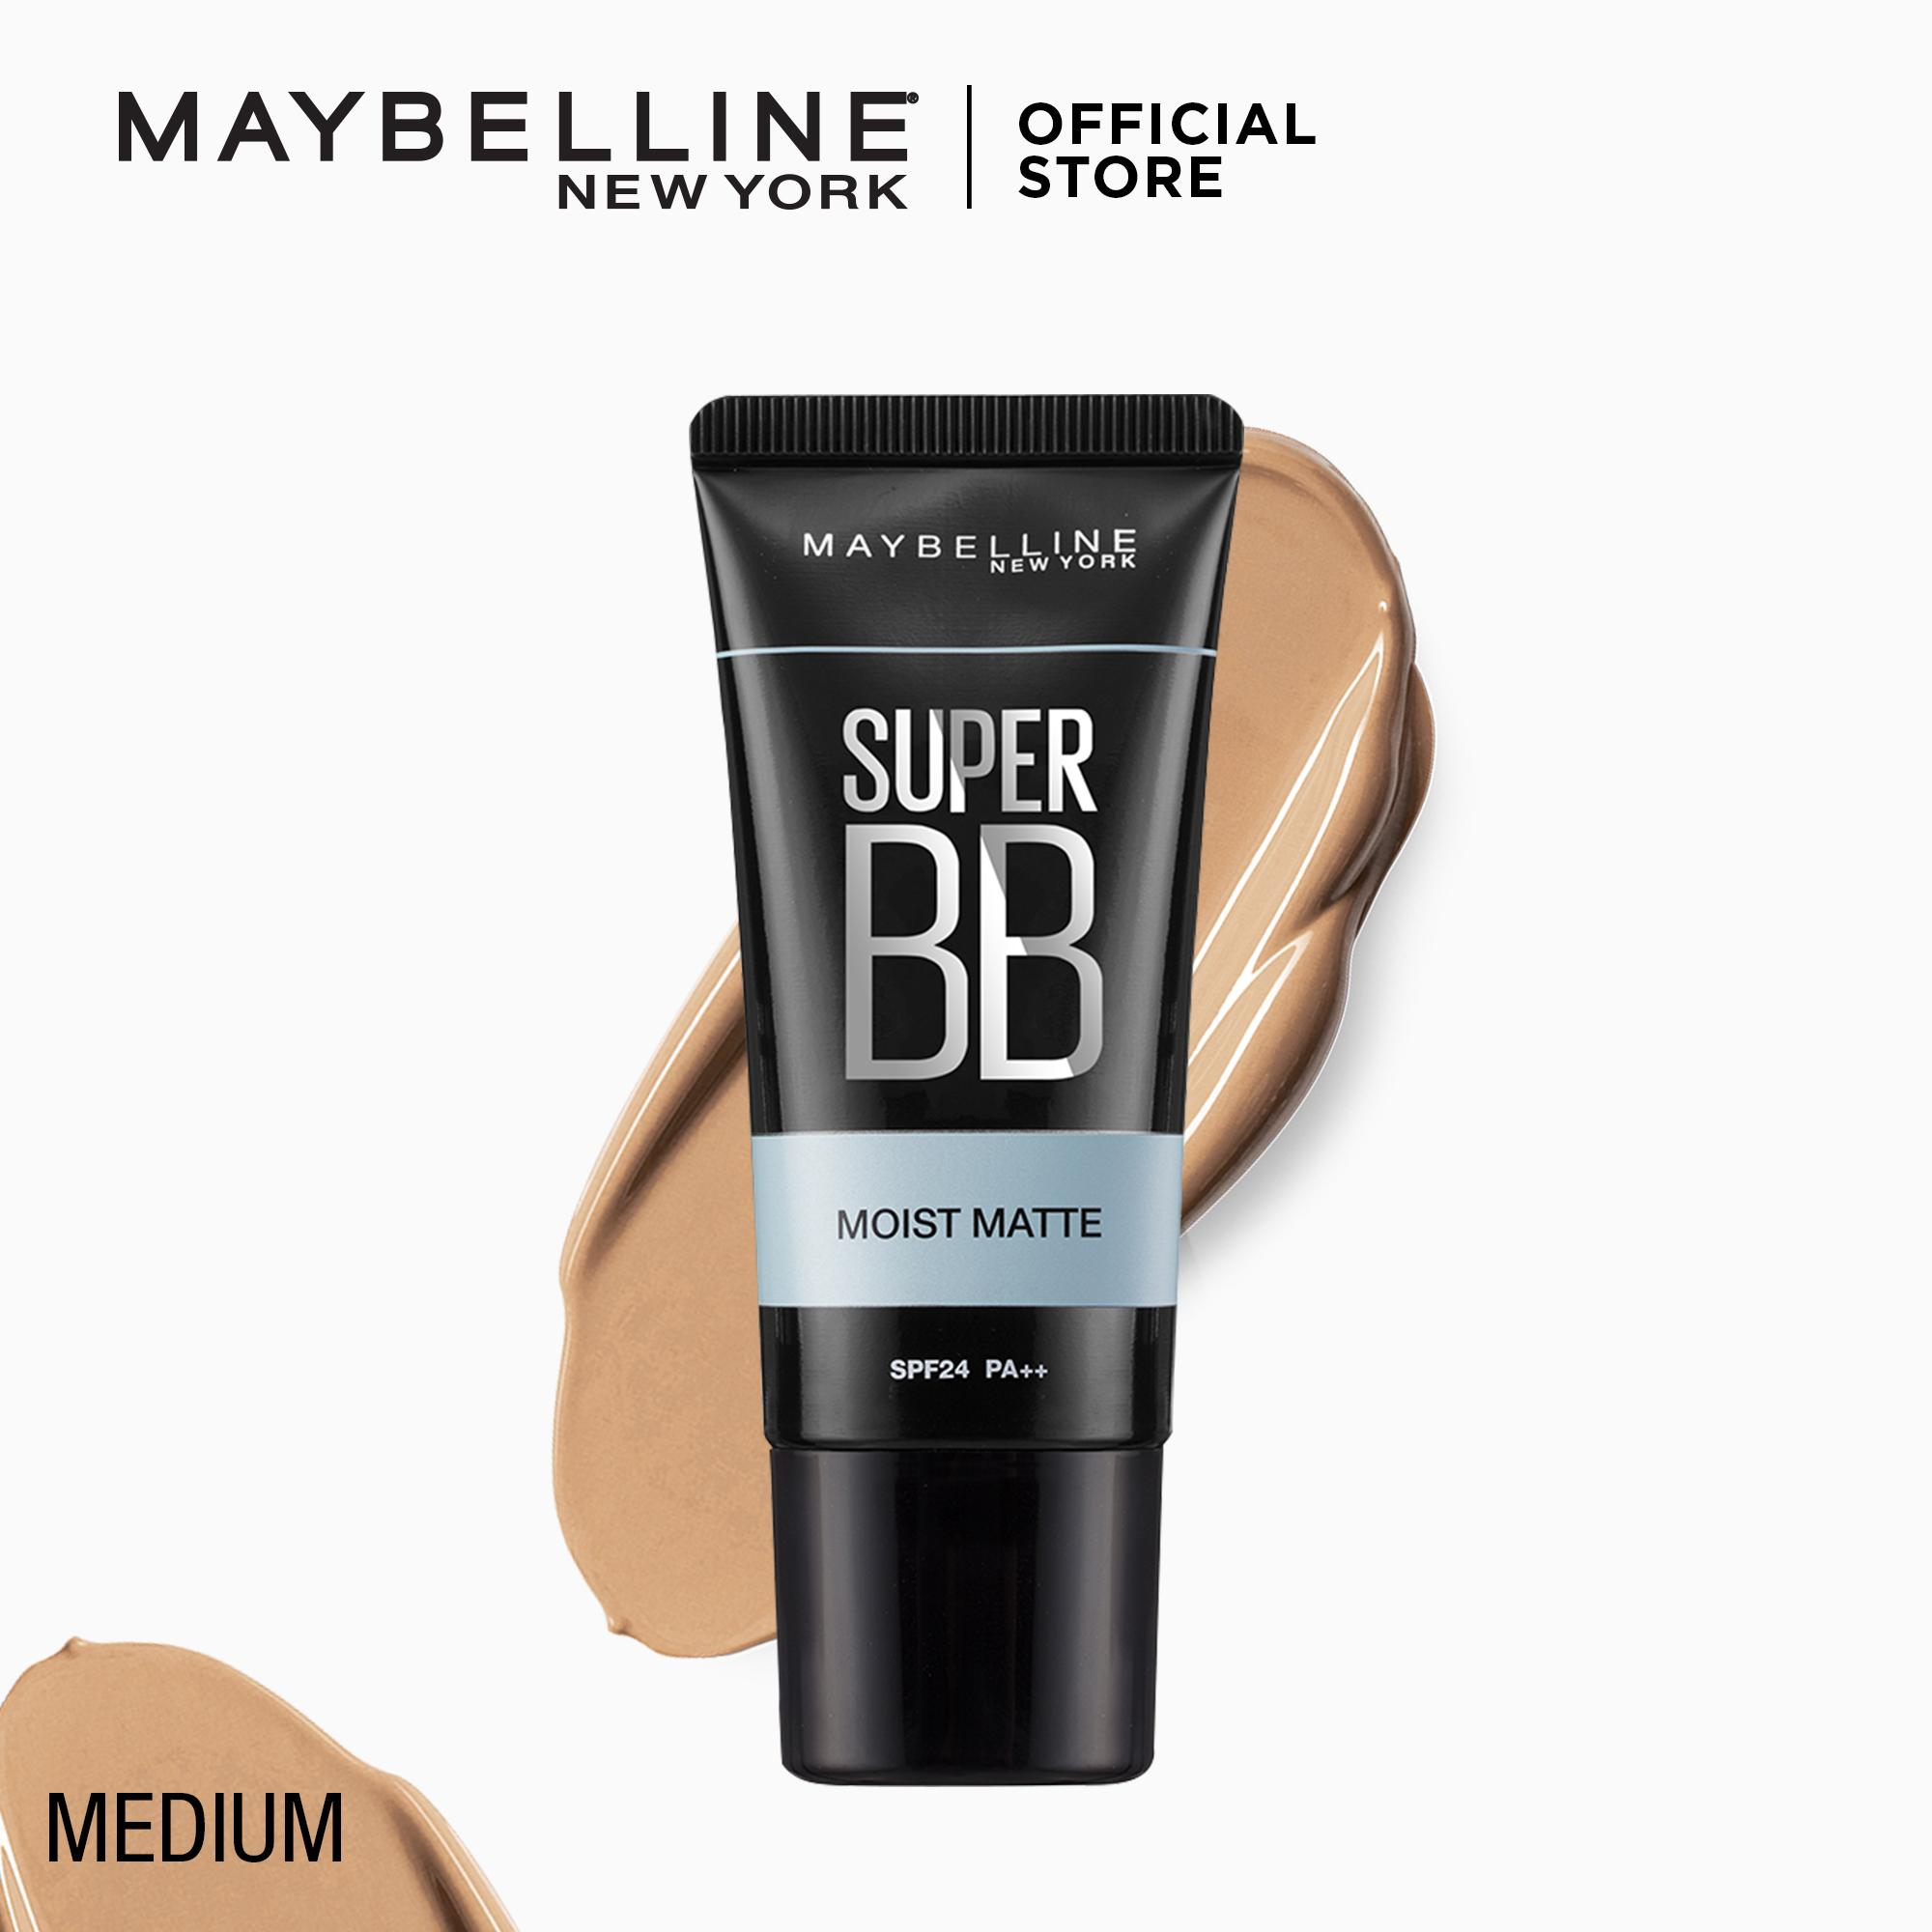 Bb And Cc Cream Brands Face Control On Sale Prices Set Bioaqua Foundation Light Skin Lightweight Super Moist Matte Spf24 Pa By Maybelline